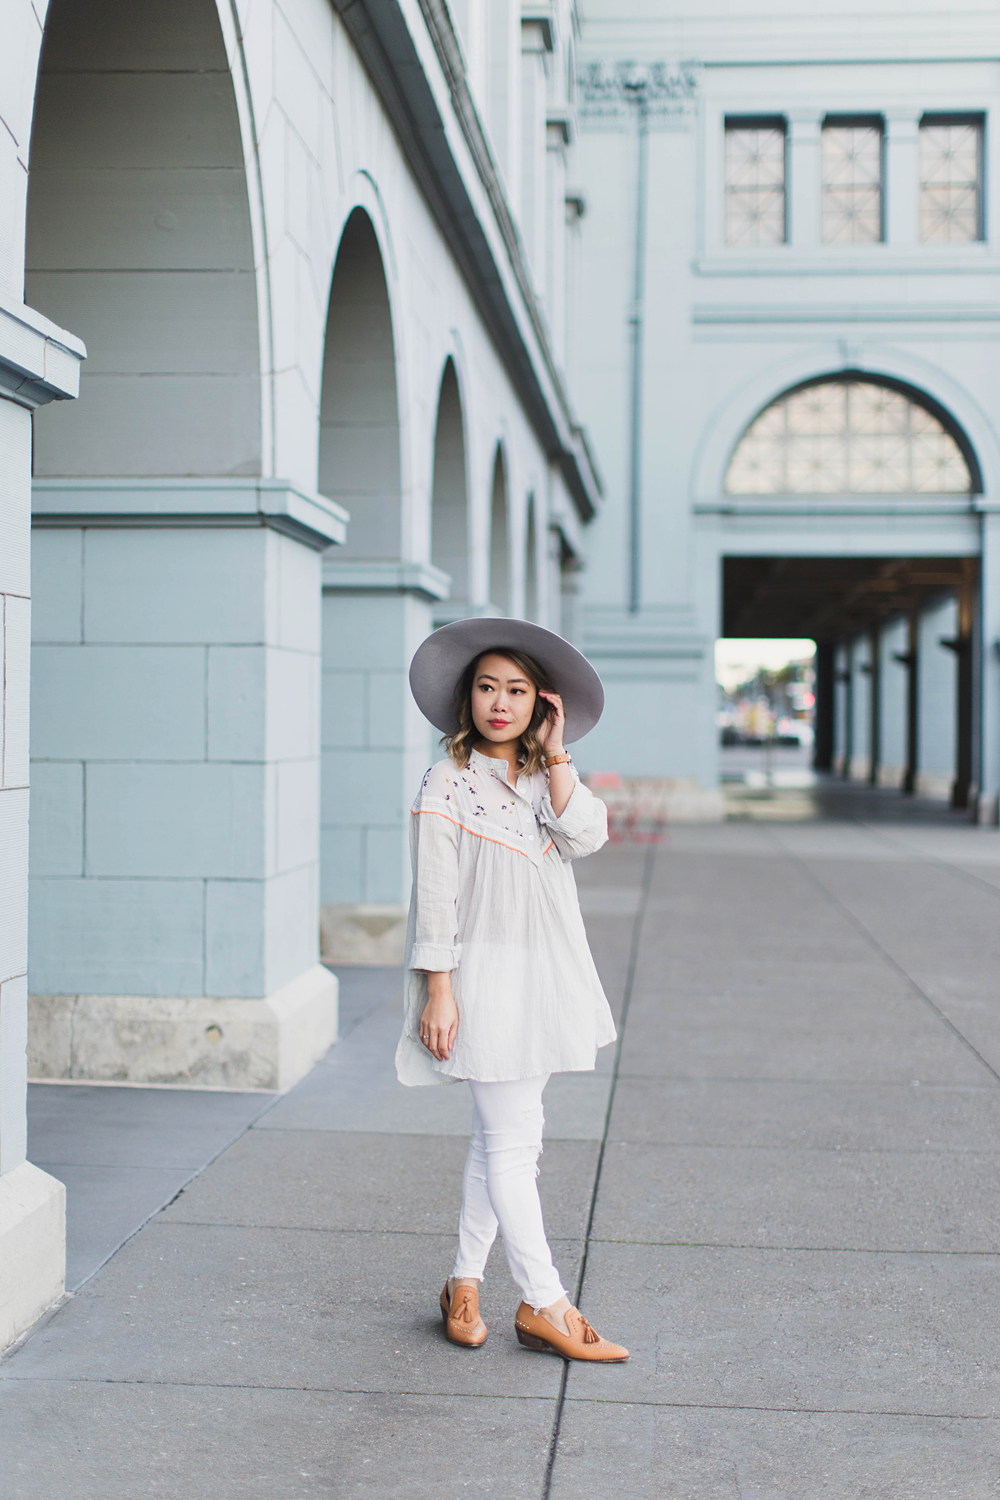 05freepeople-sf-sanfrancisco-ferrybuilding-style-fashion